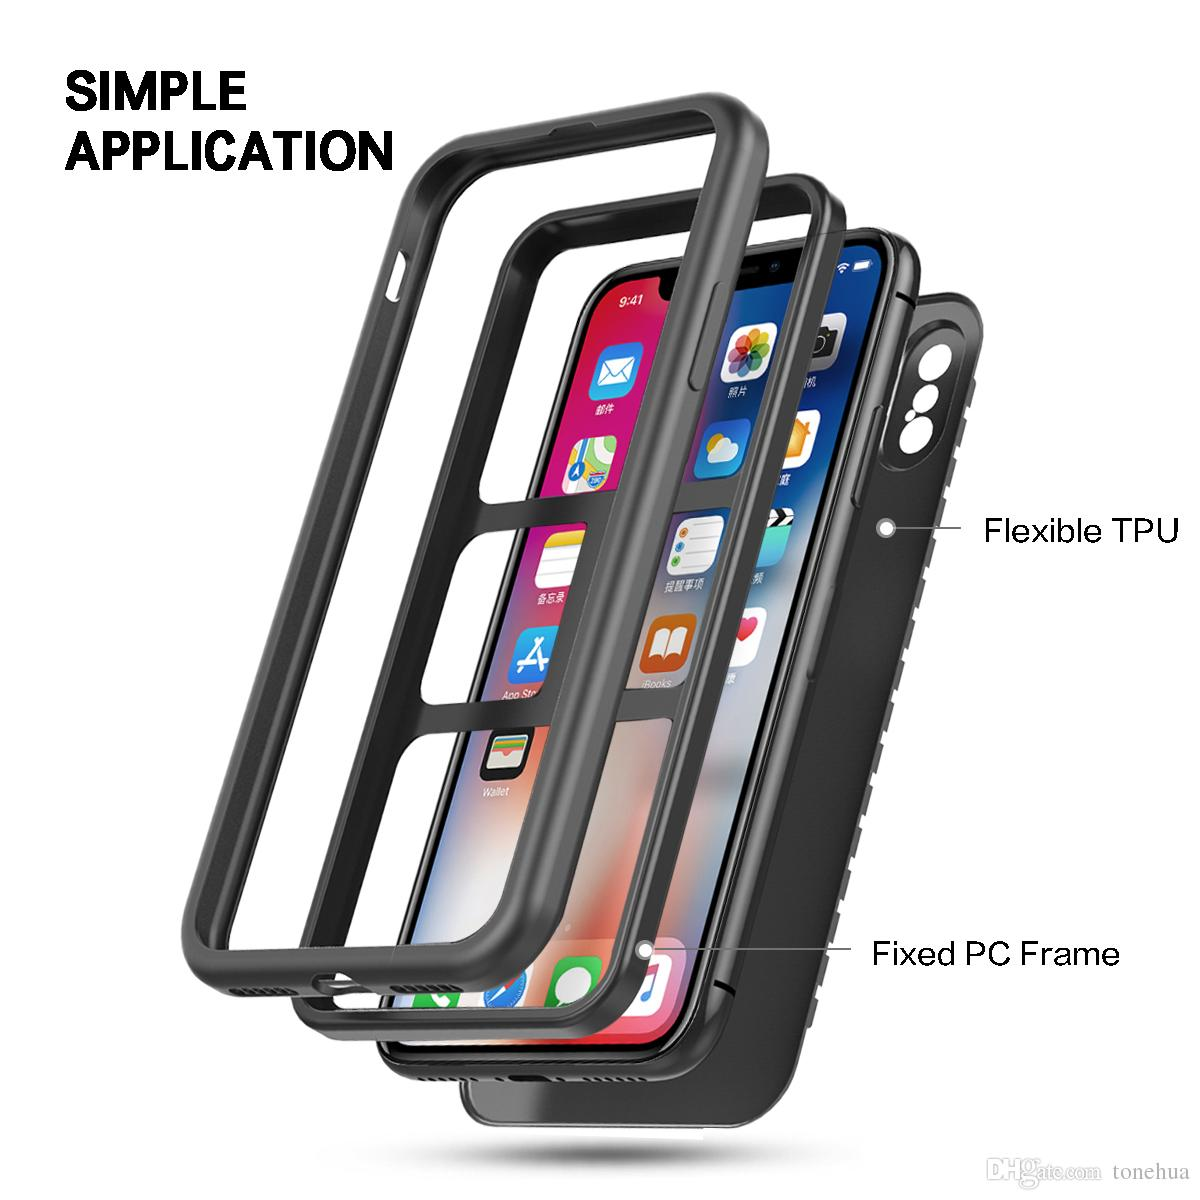 Phone Case Screen Protection Scratch Resistant Anti-Fingerprint Greaseproof Phone Cover Flexible TPU Fixed PC Frame Back Cover Phone Shell